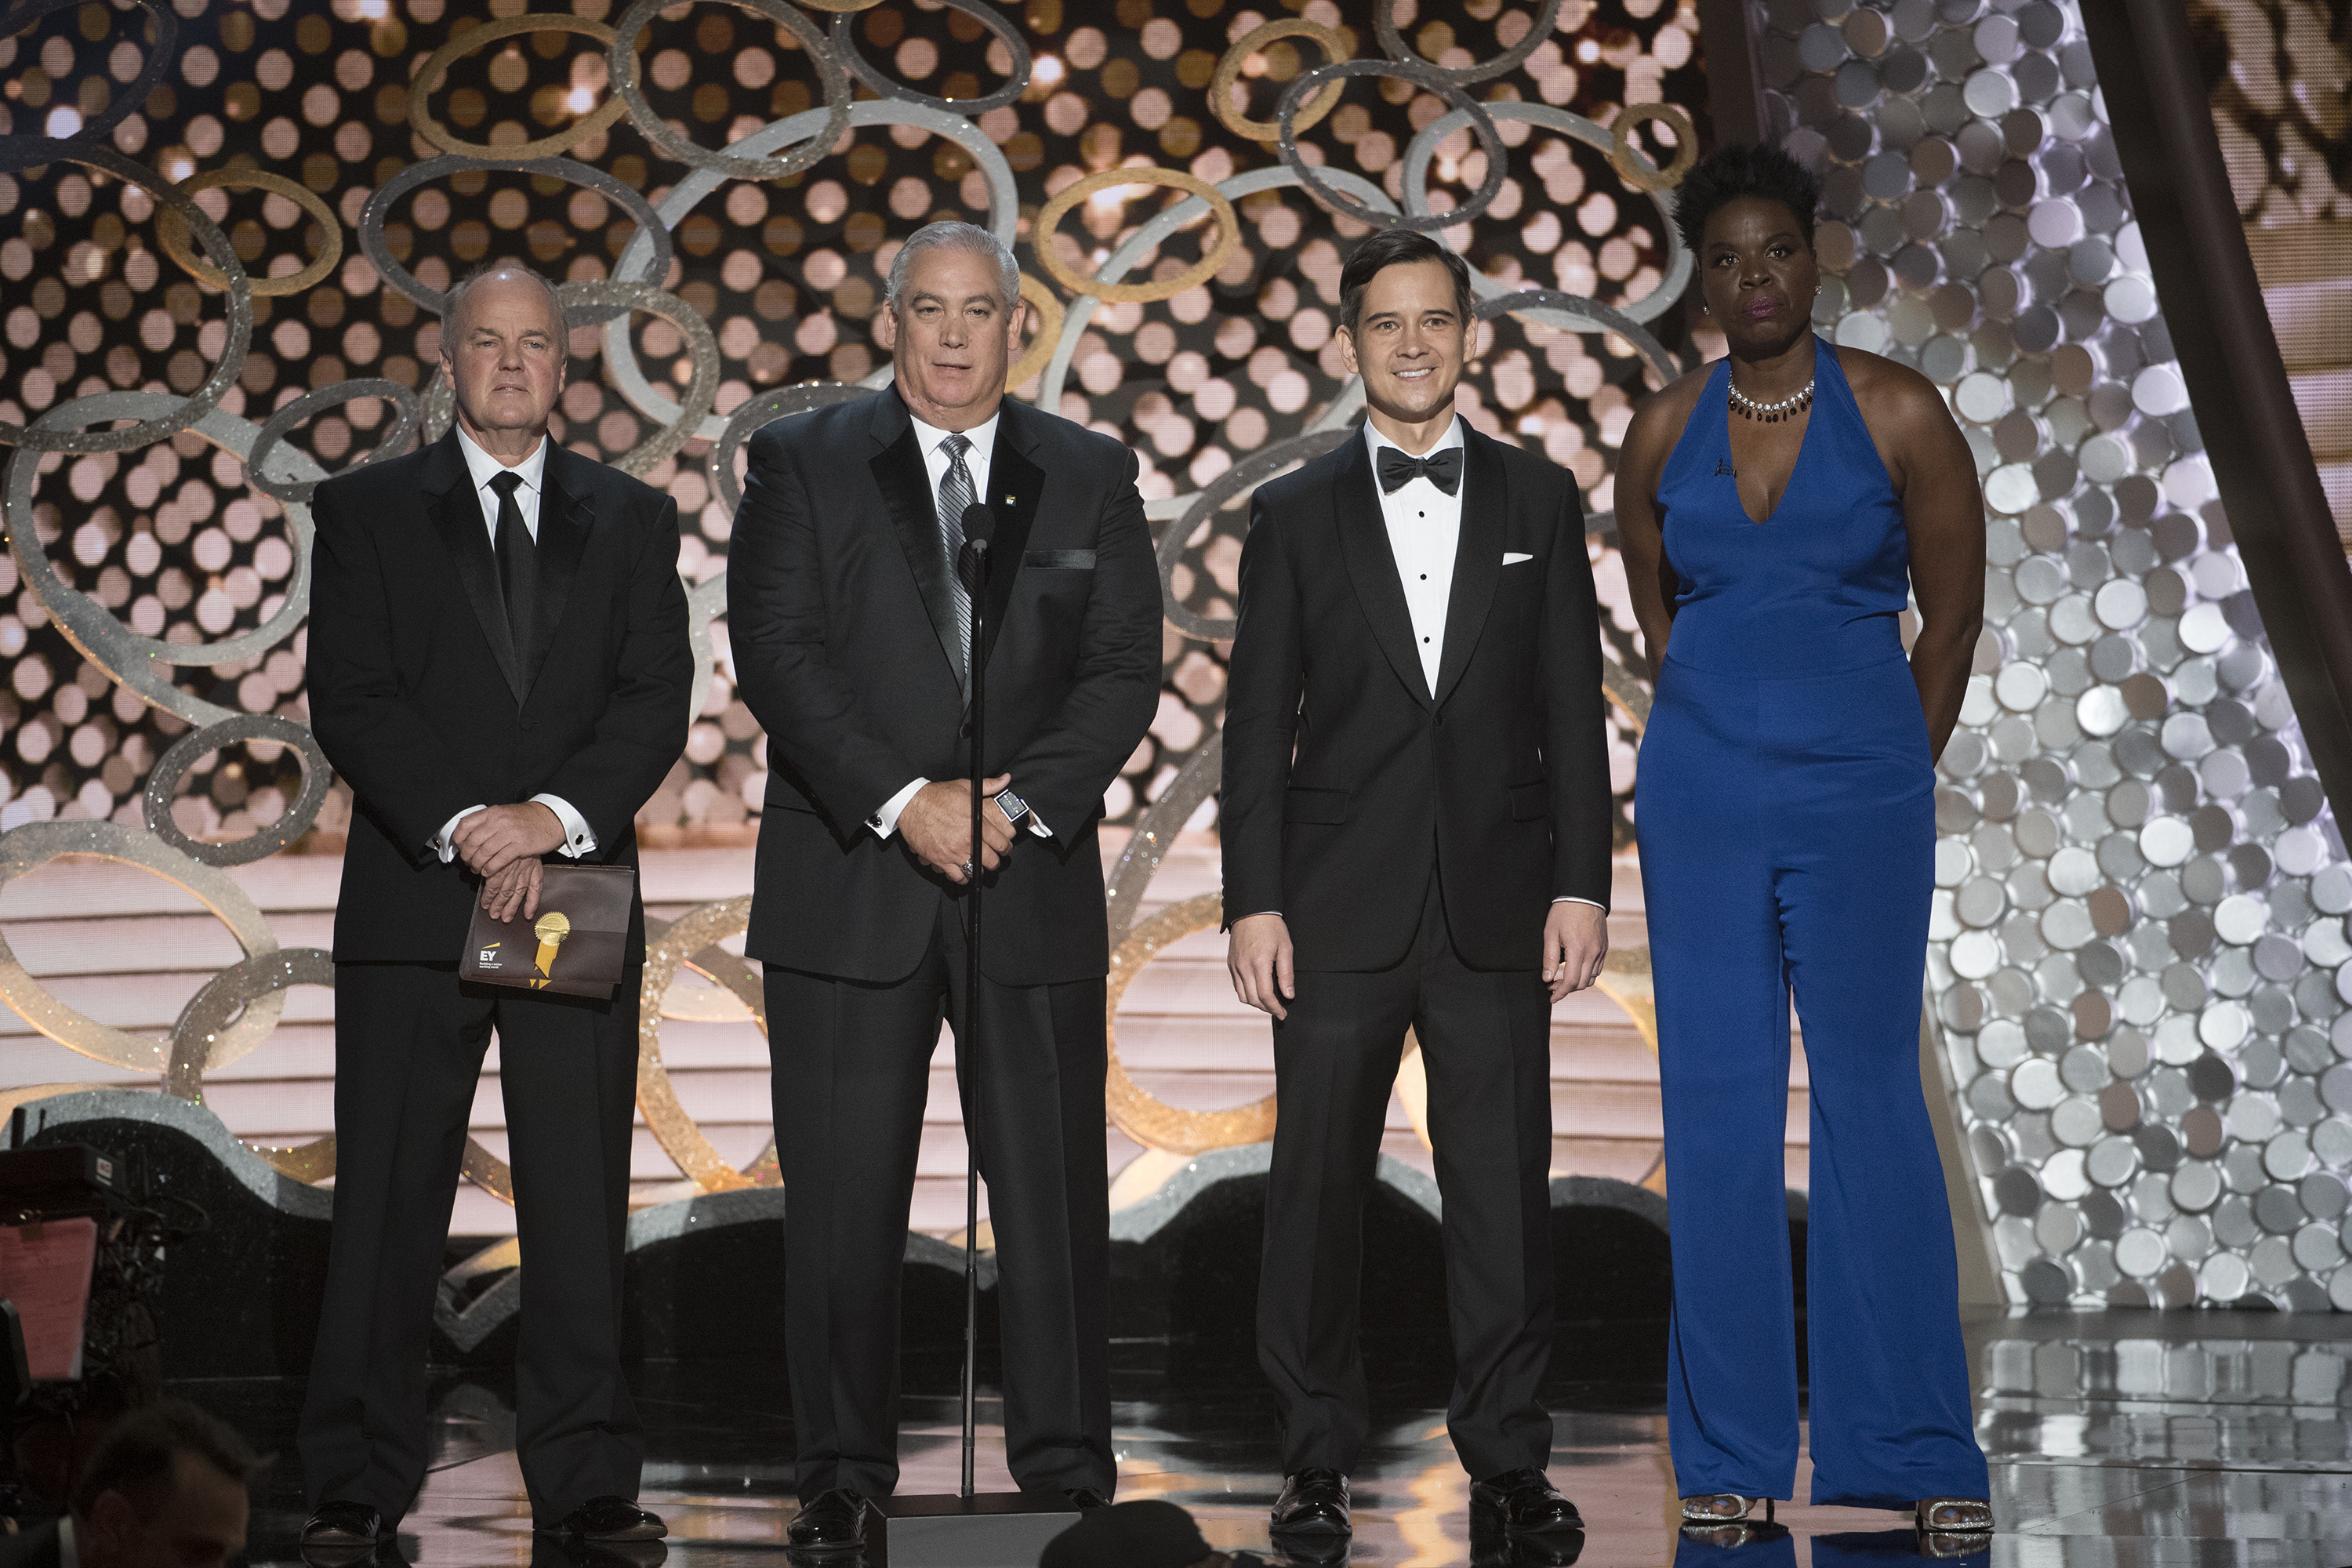 ABC's Coverage of The 68th Annual Emmy Awards